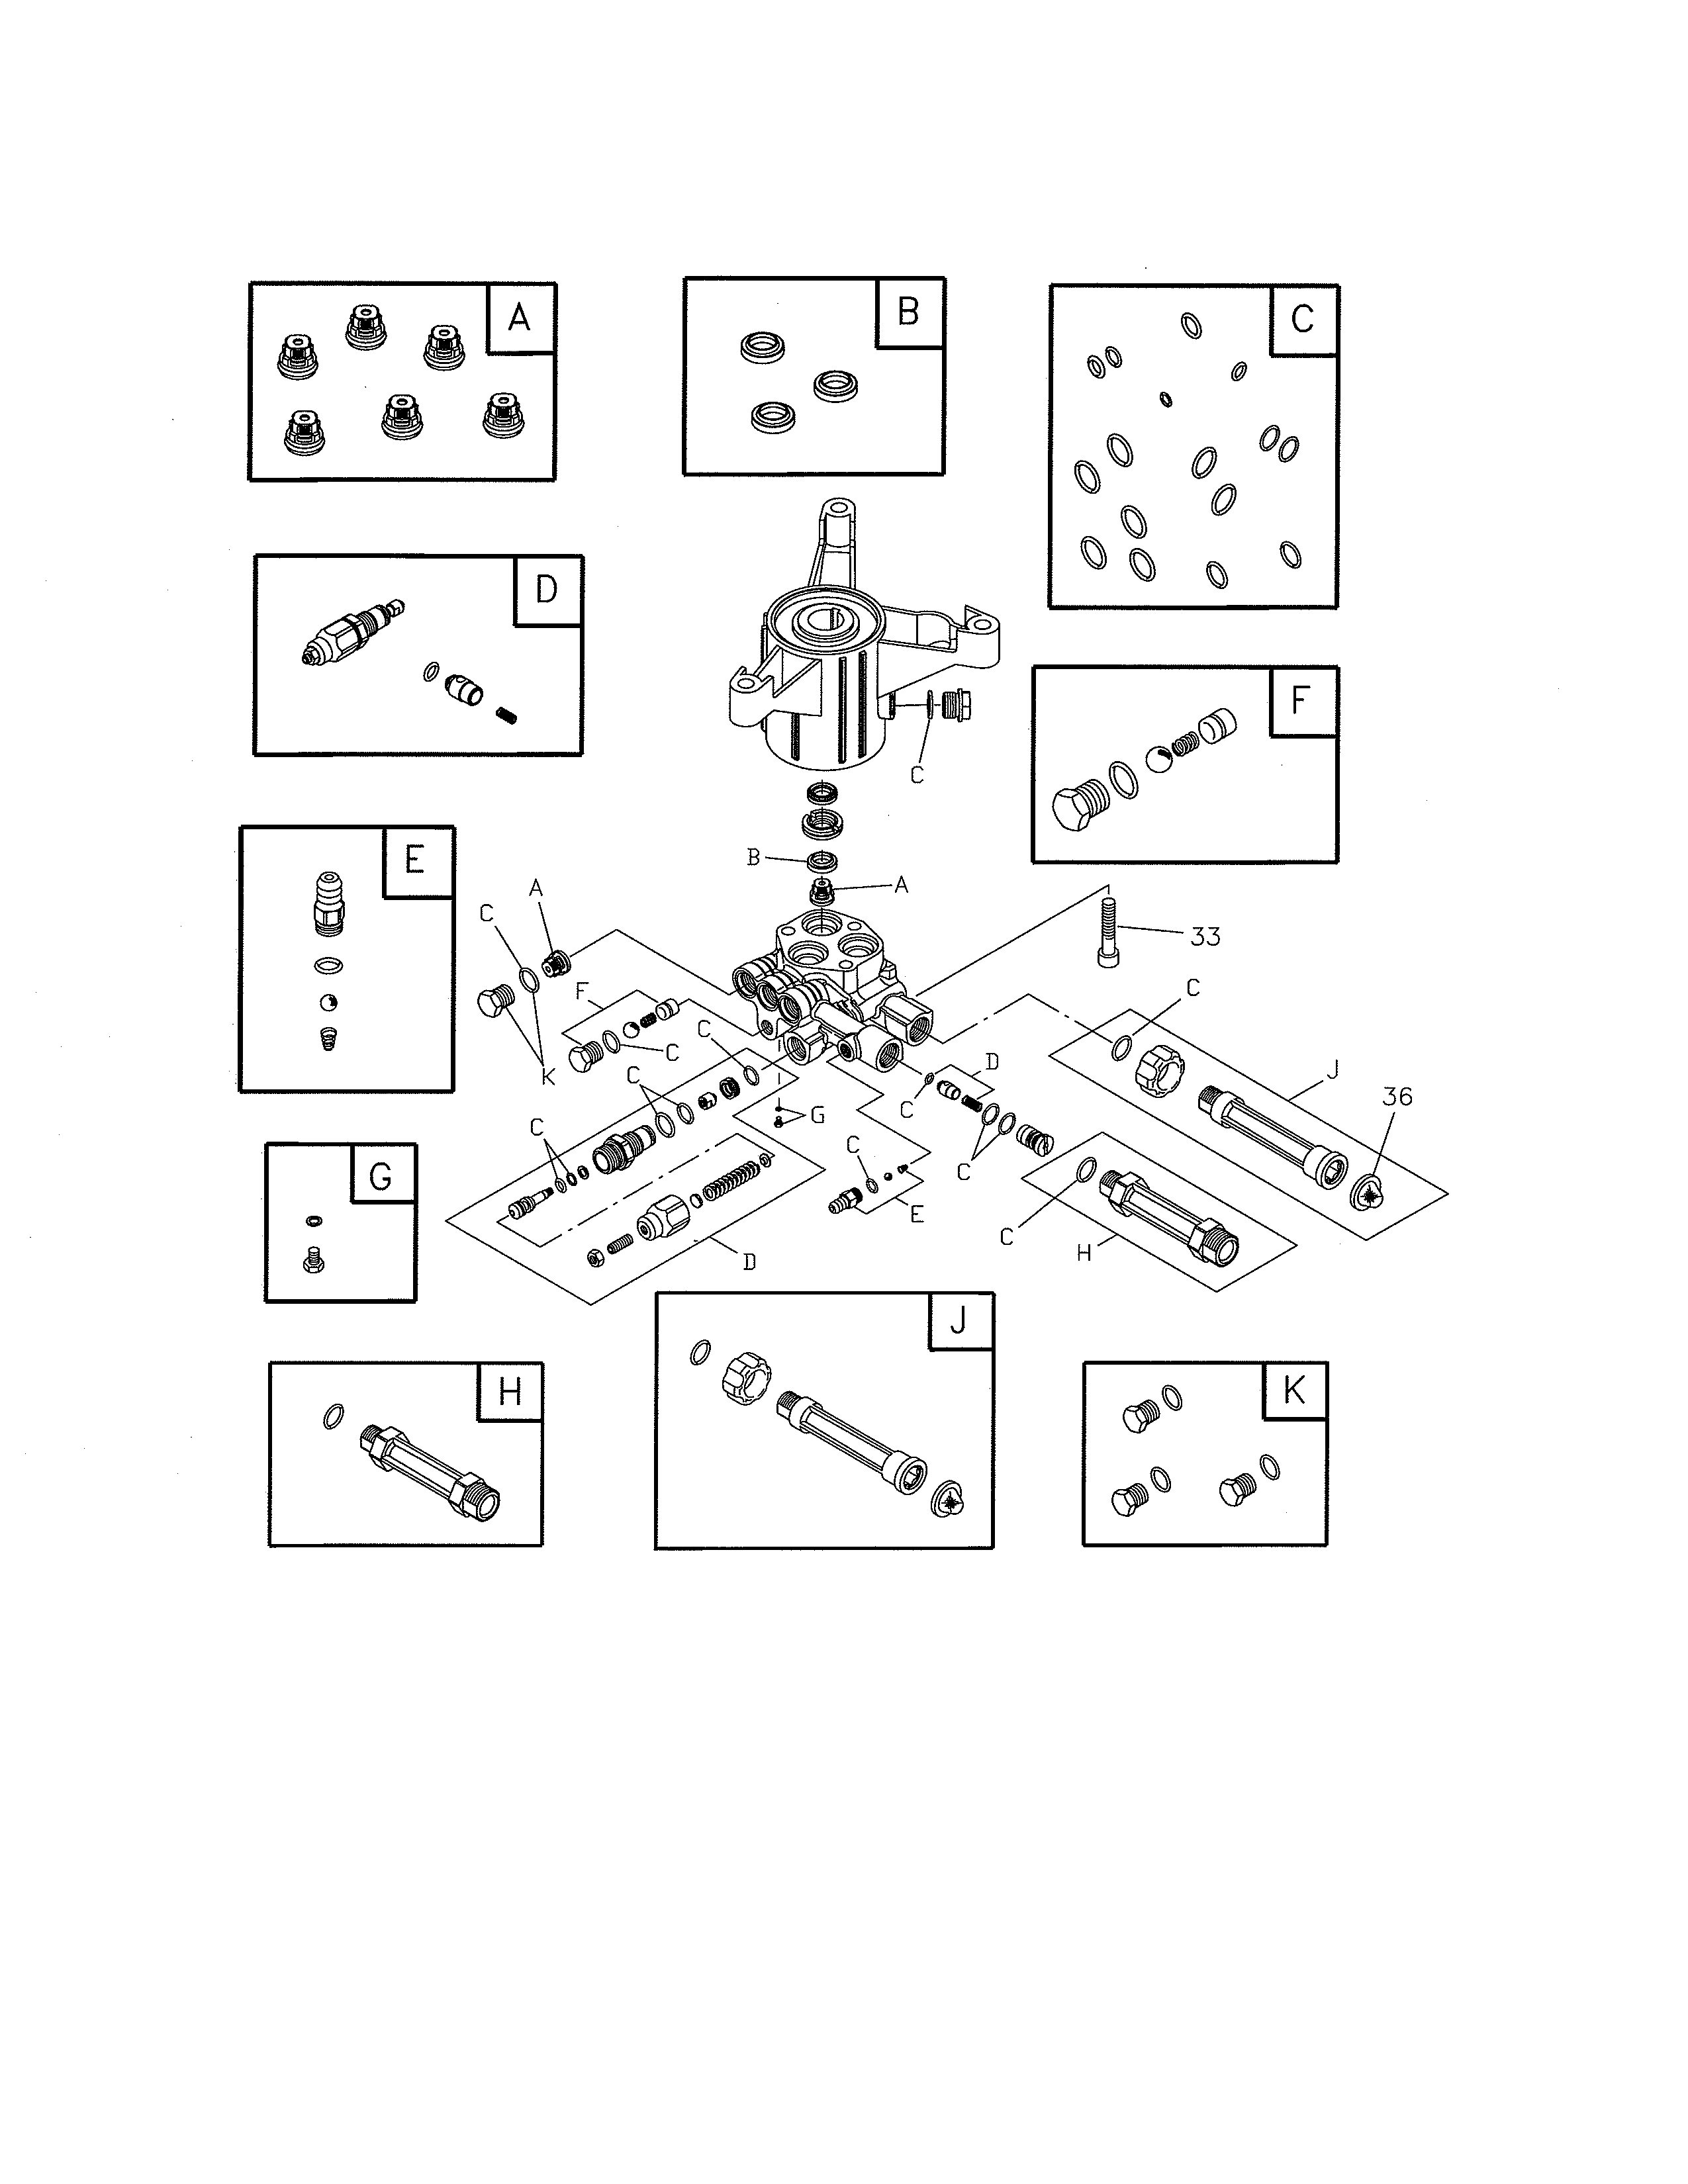 311553Gs Pump Parts, Briggs And Stratton intended for Briggs And Stratton Pressure Washer Parts Diagram